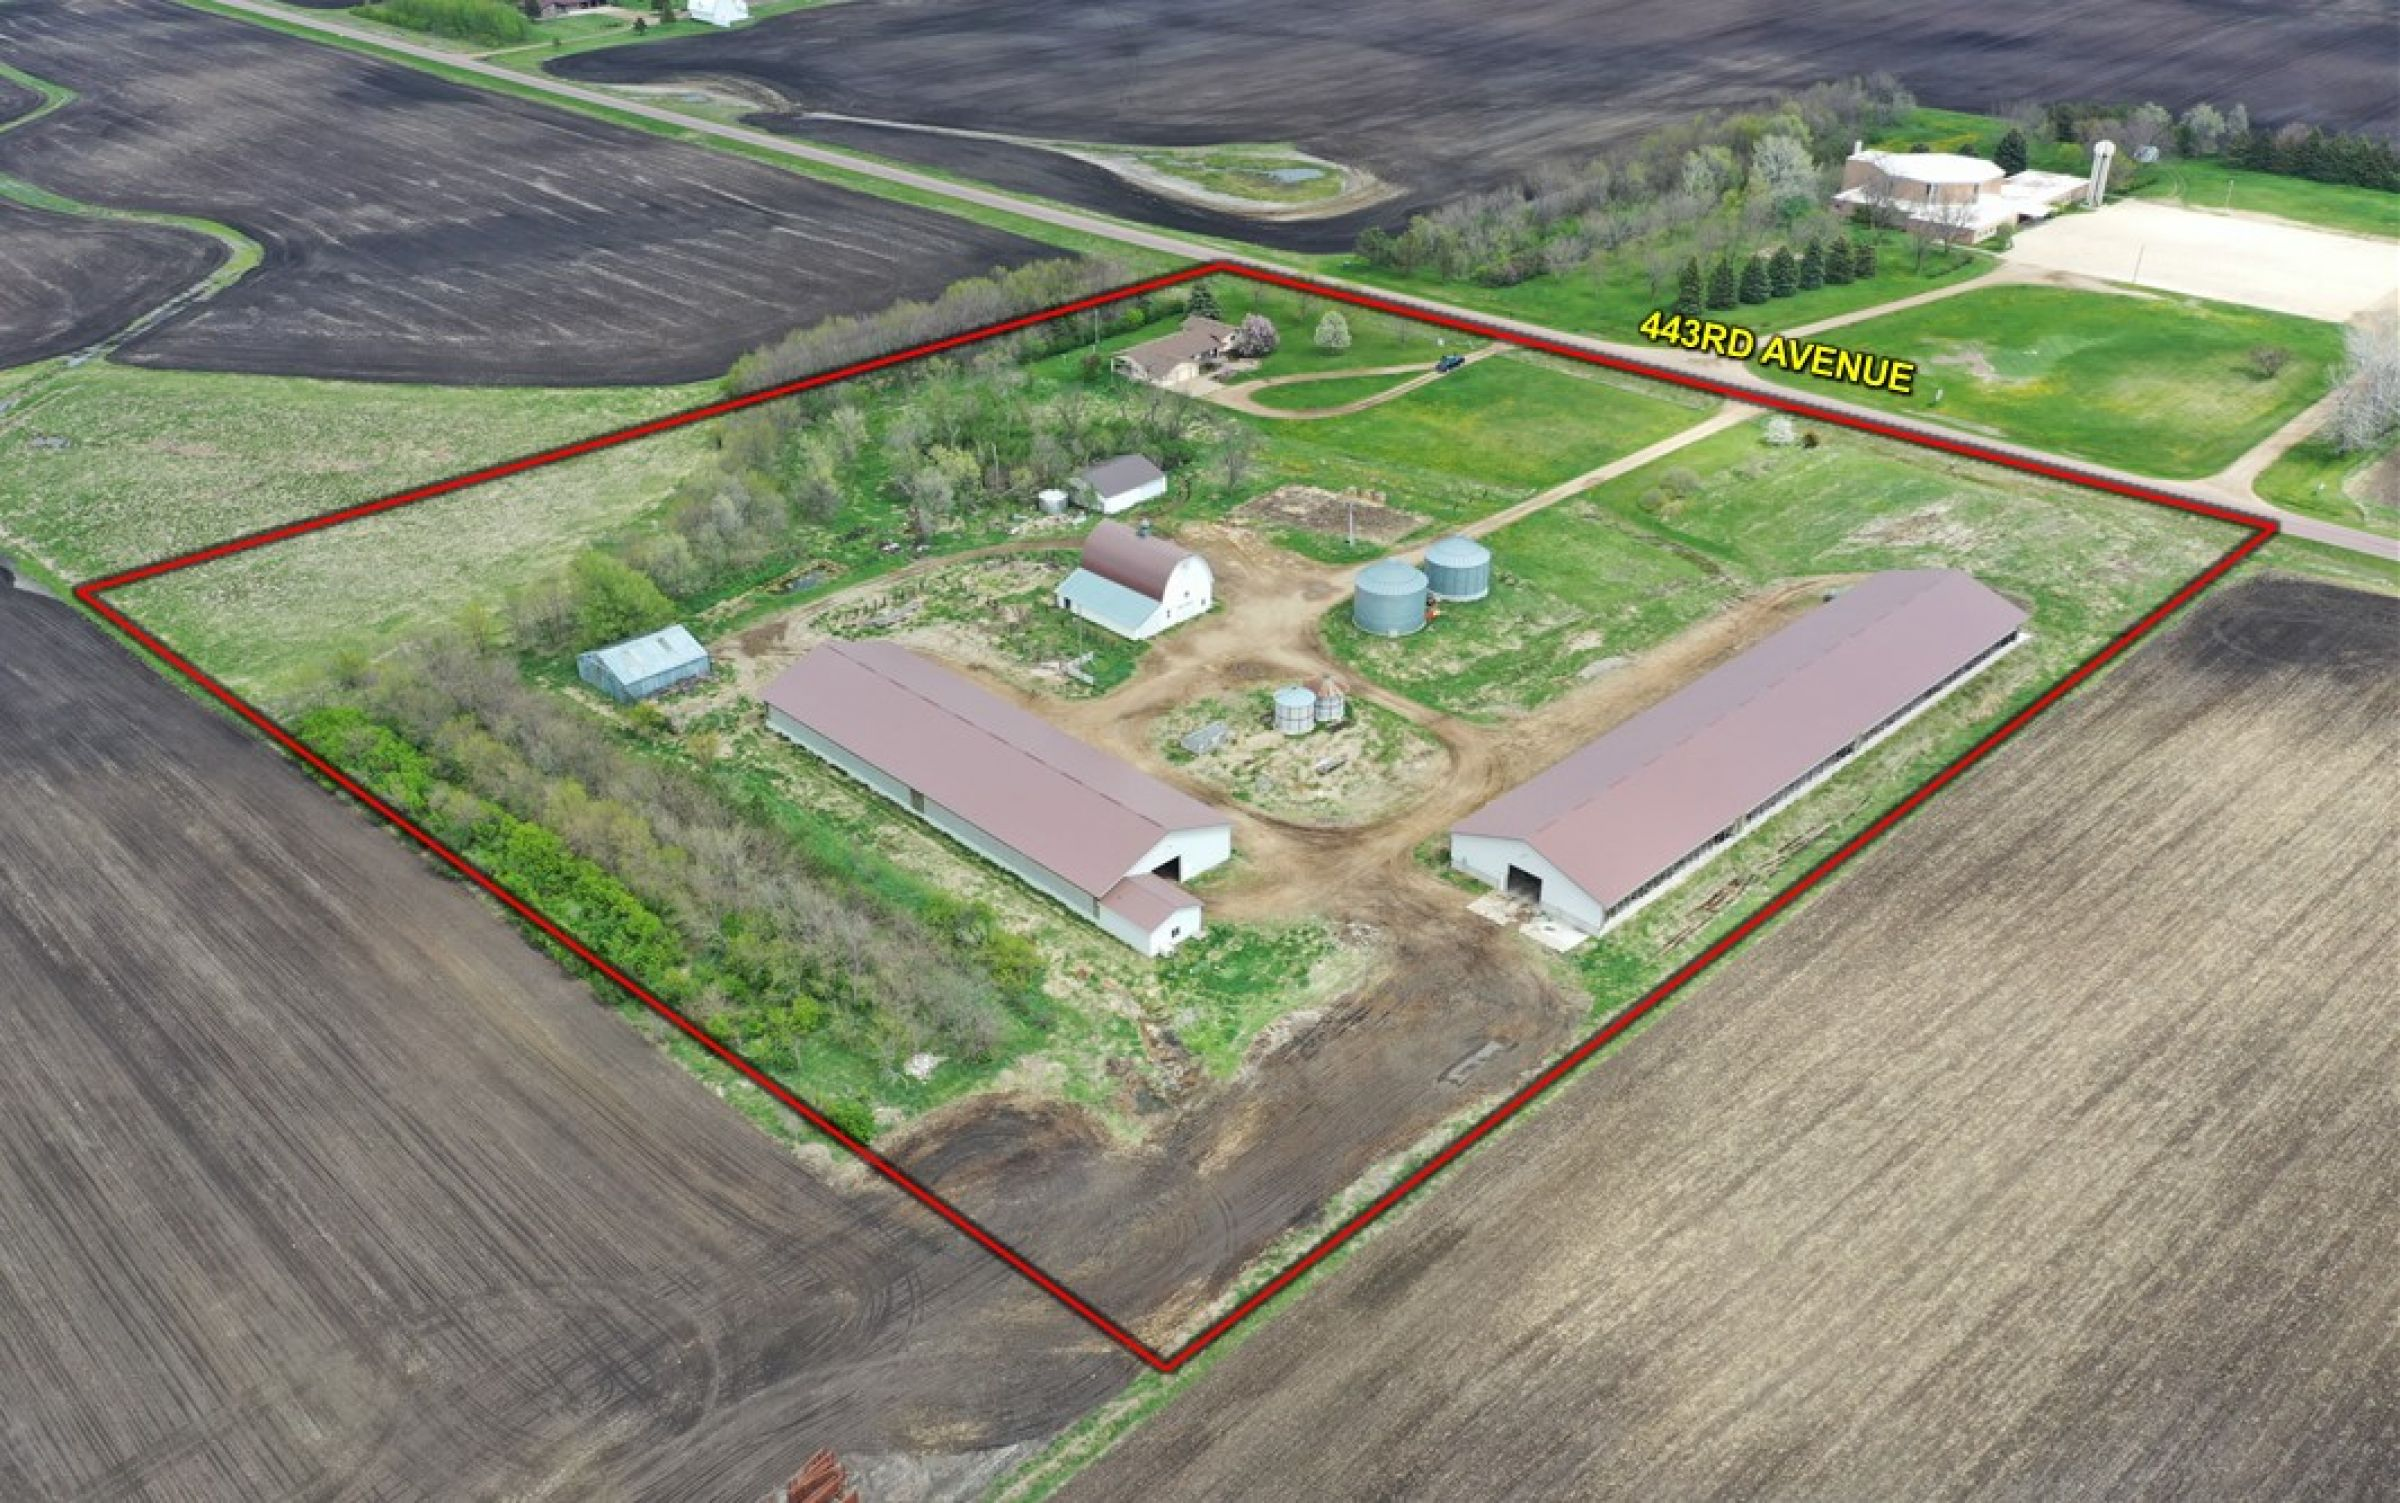 residential-auctions-land-turner-county-south-dakota-12-acres-listing-number-14971-1-2020-06-02-151910.jpg